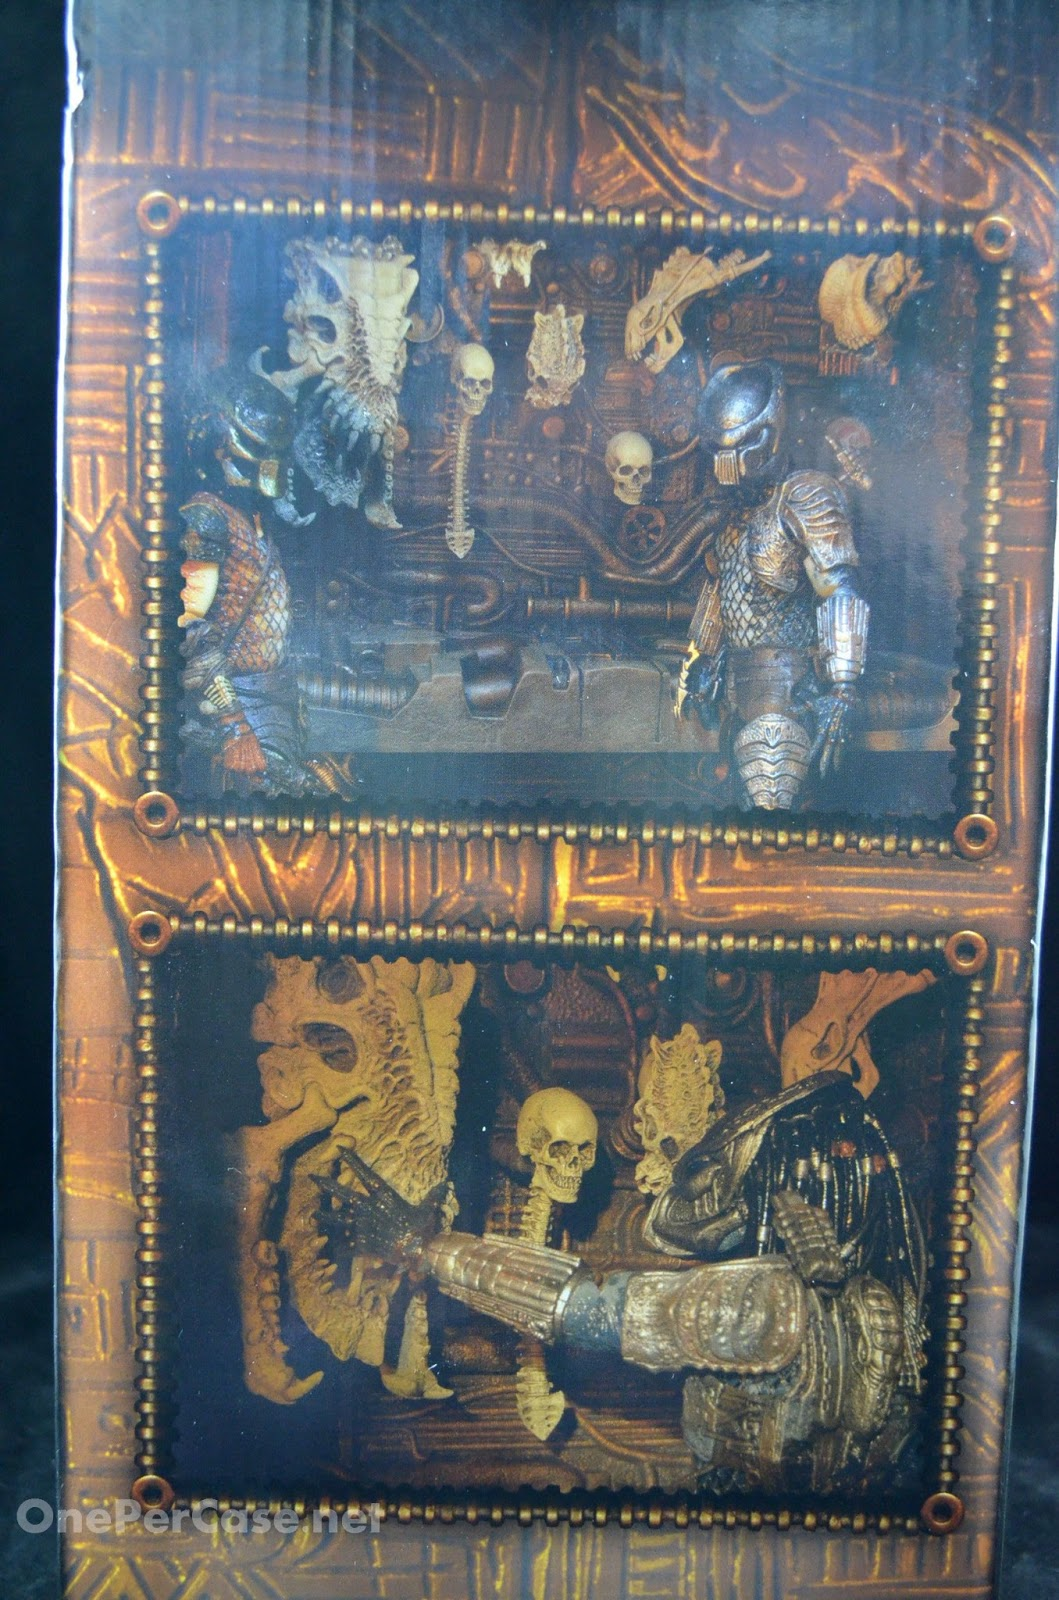 One Per Case: NECA Predator 2 - Trophy Wall Diorama